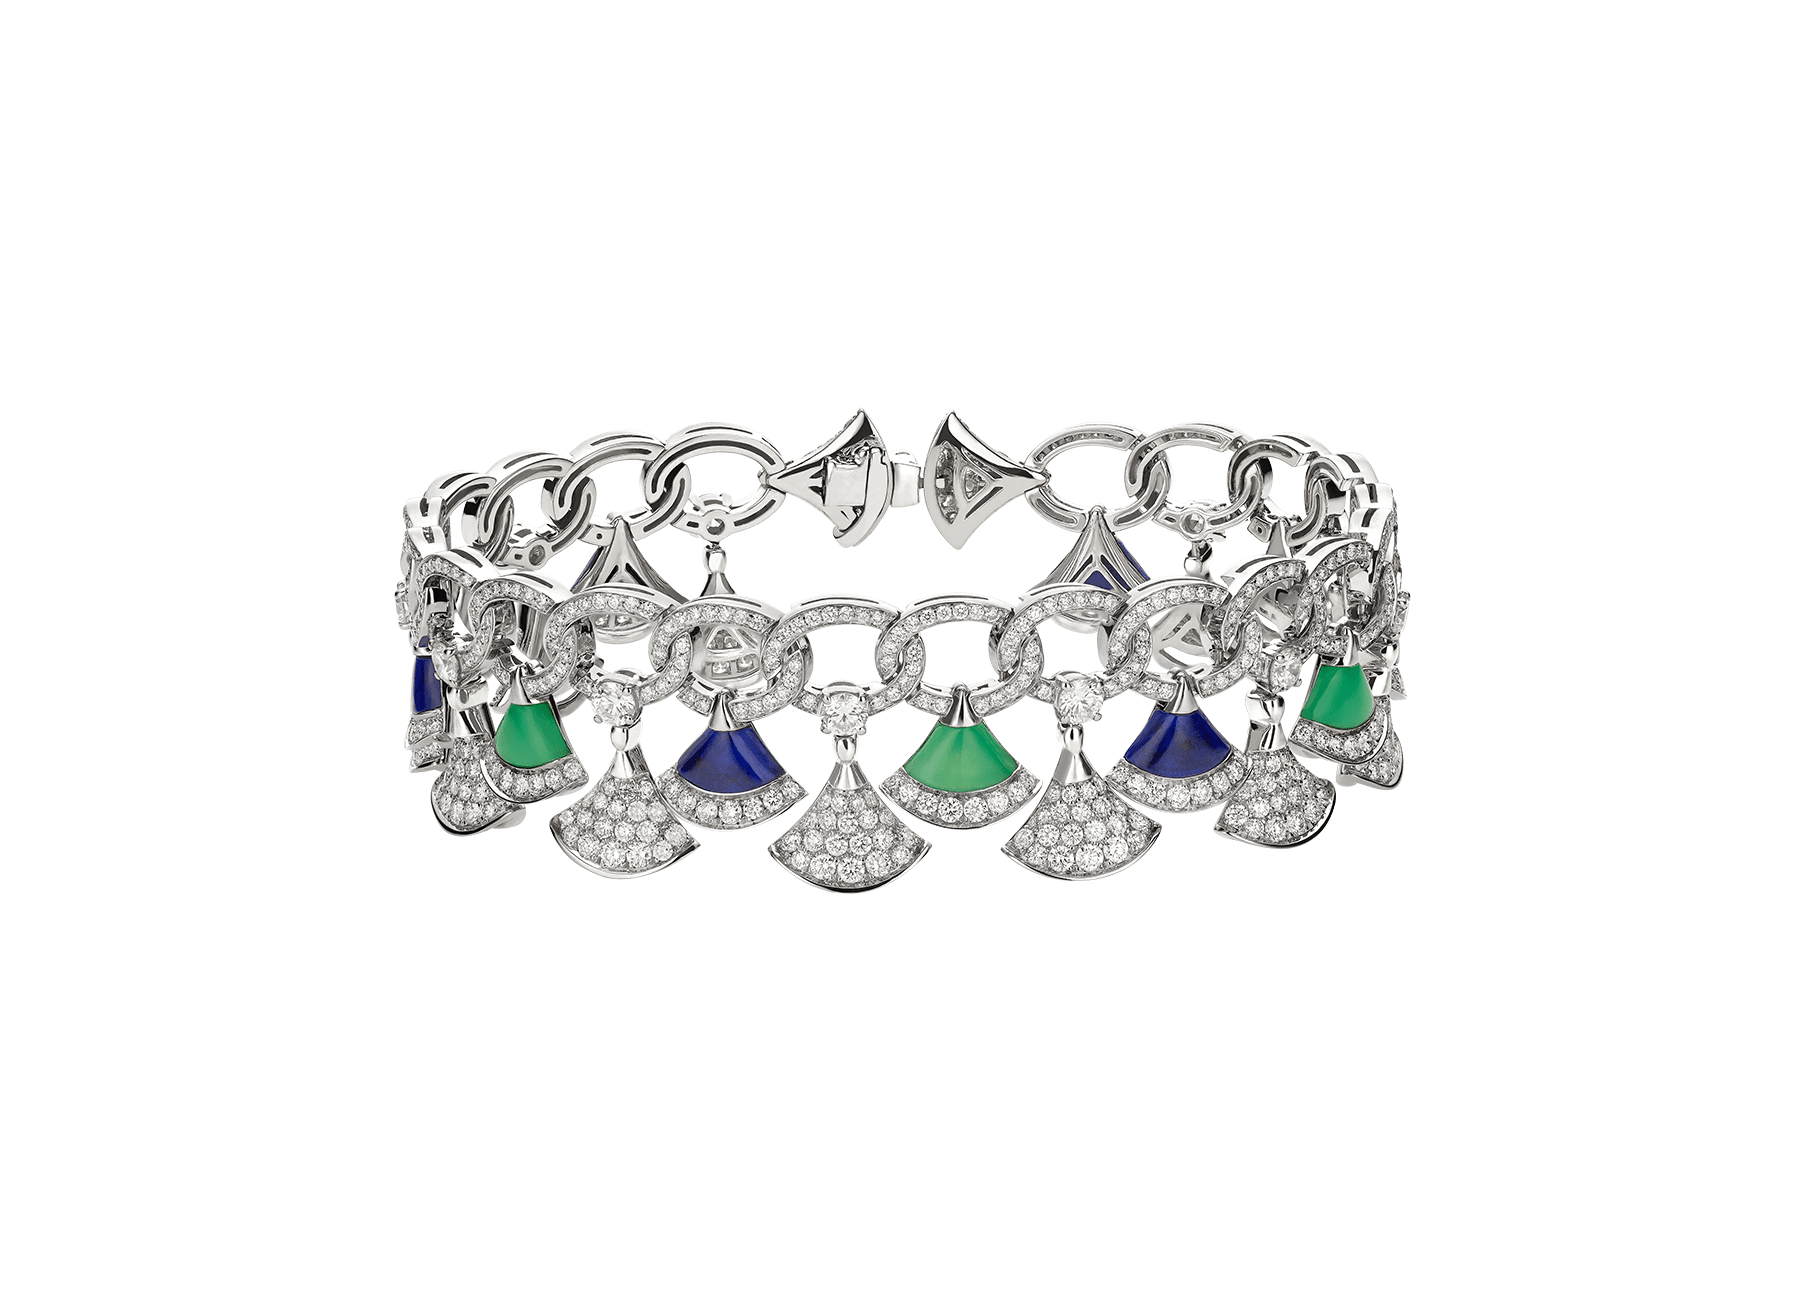 DIVAS' DREAM bracelet in 18 kt white gold set with lapis lazuli and chrysoprase elements and pavé diamonds. 354097 image 2